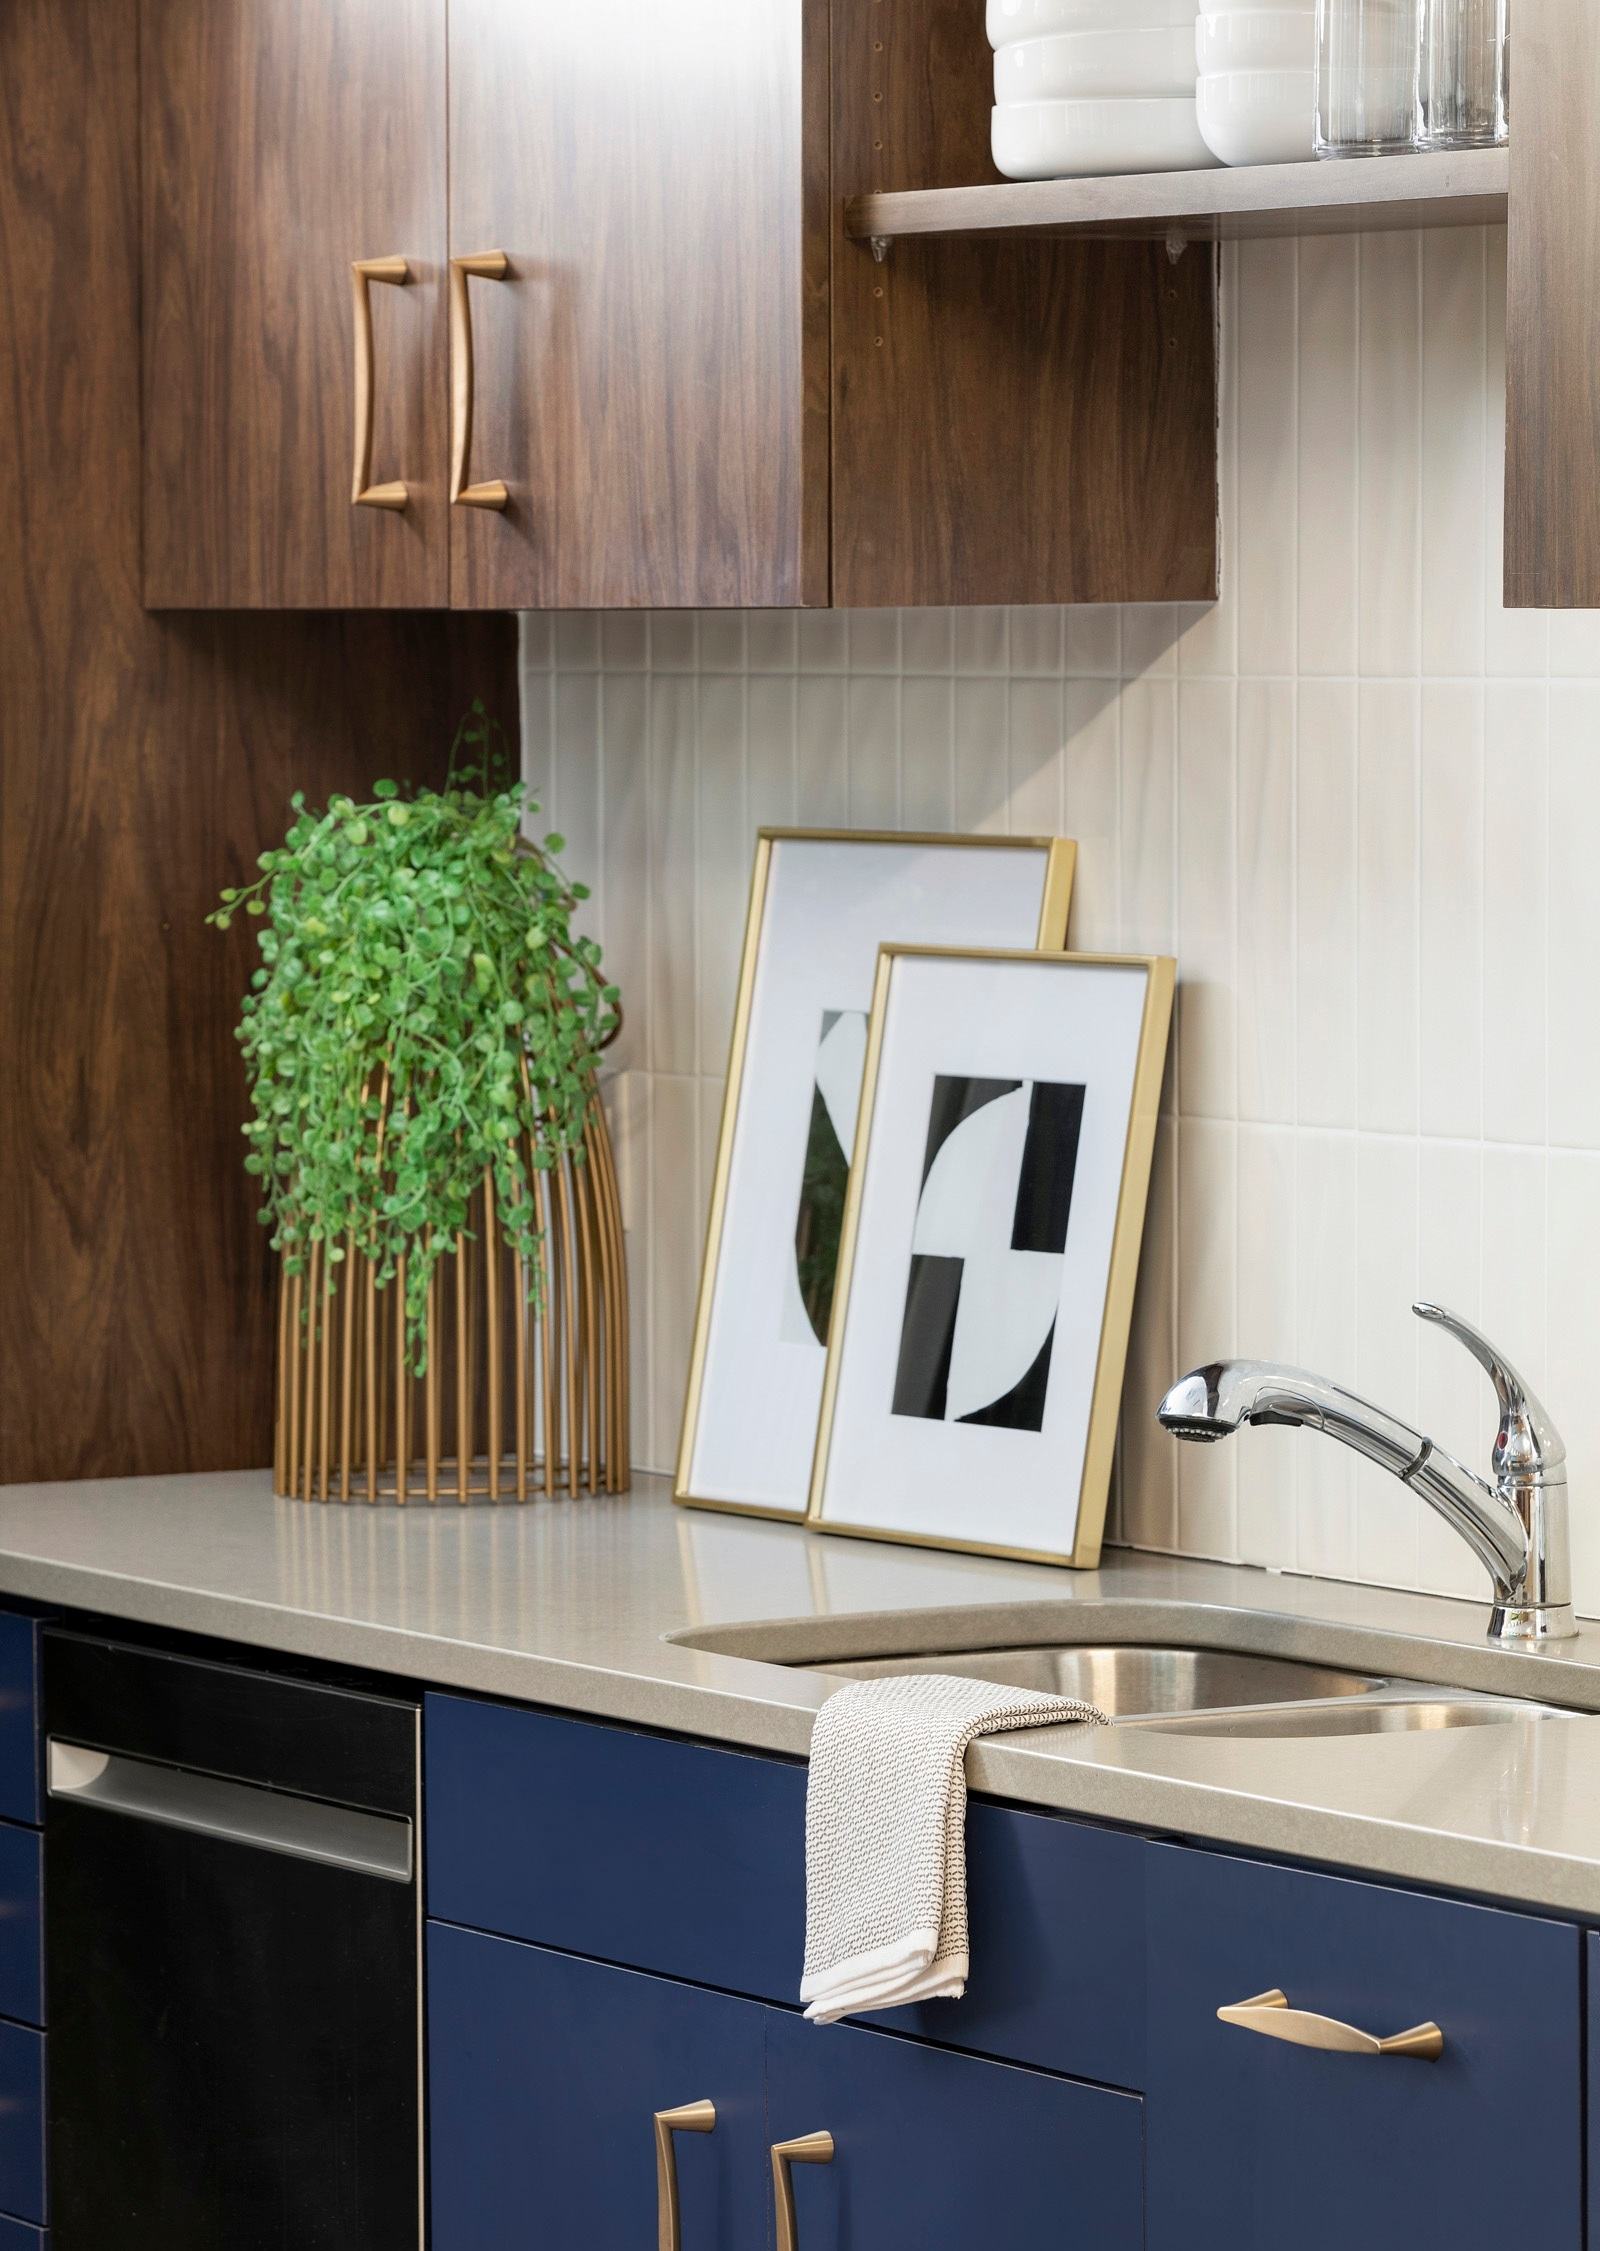 Kitchenette Design | Vela Creative Interior Design | Minneapolis